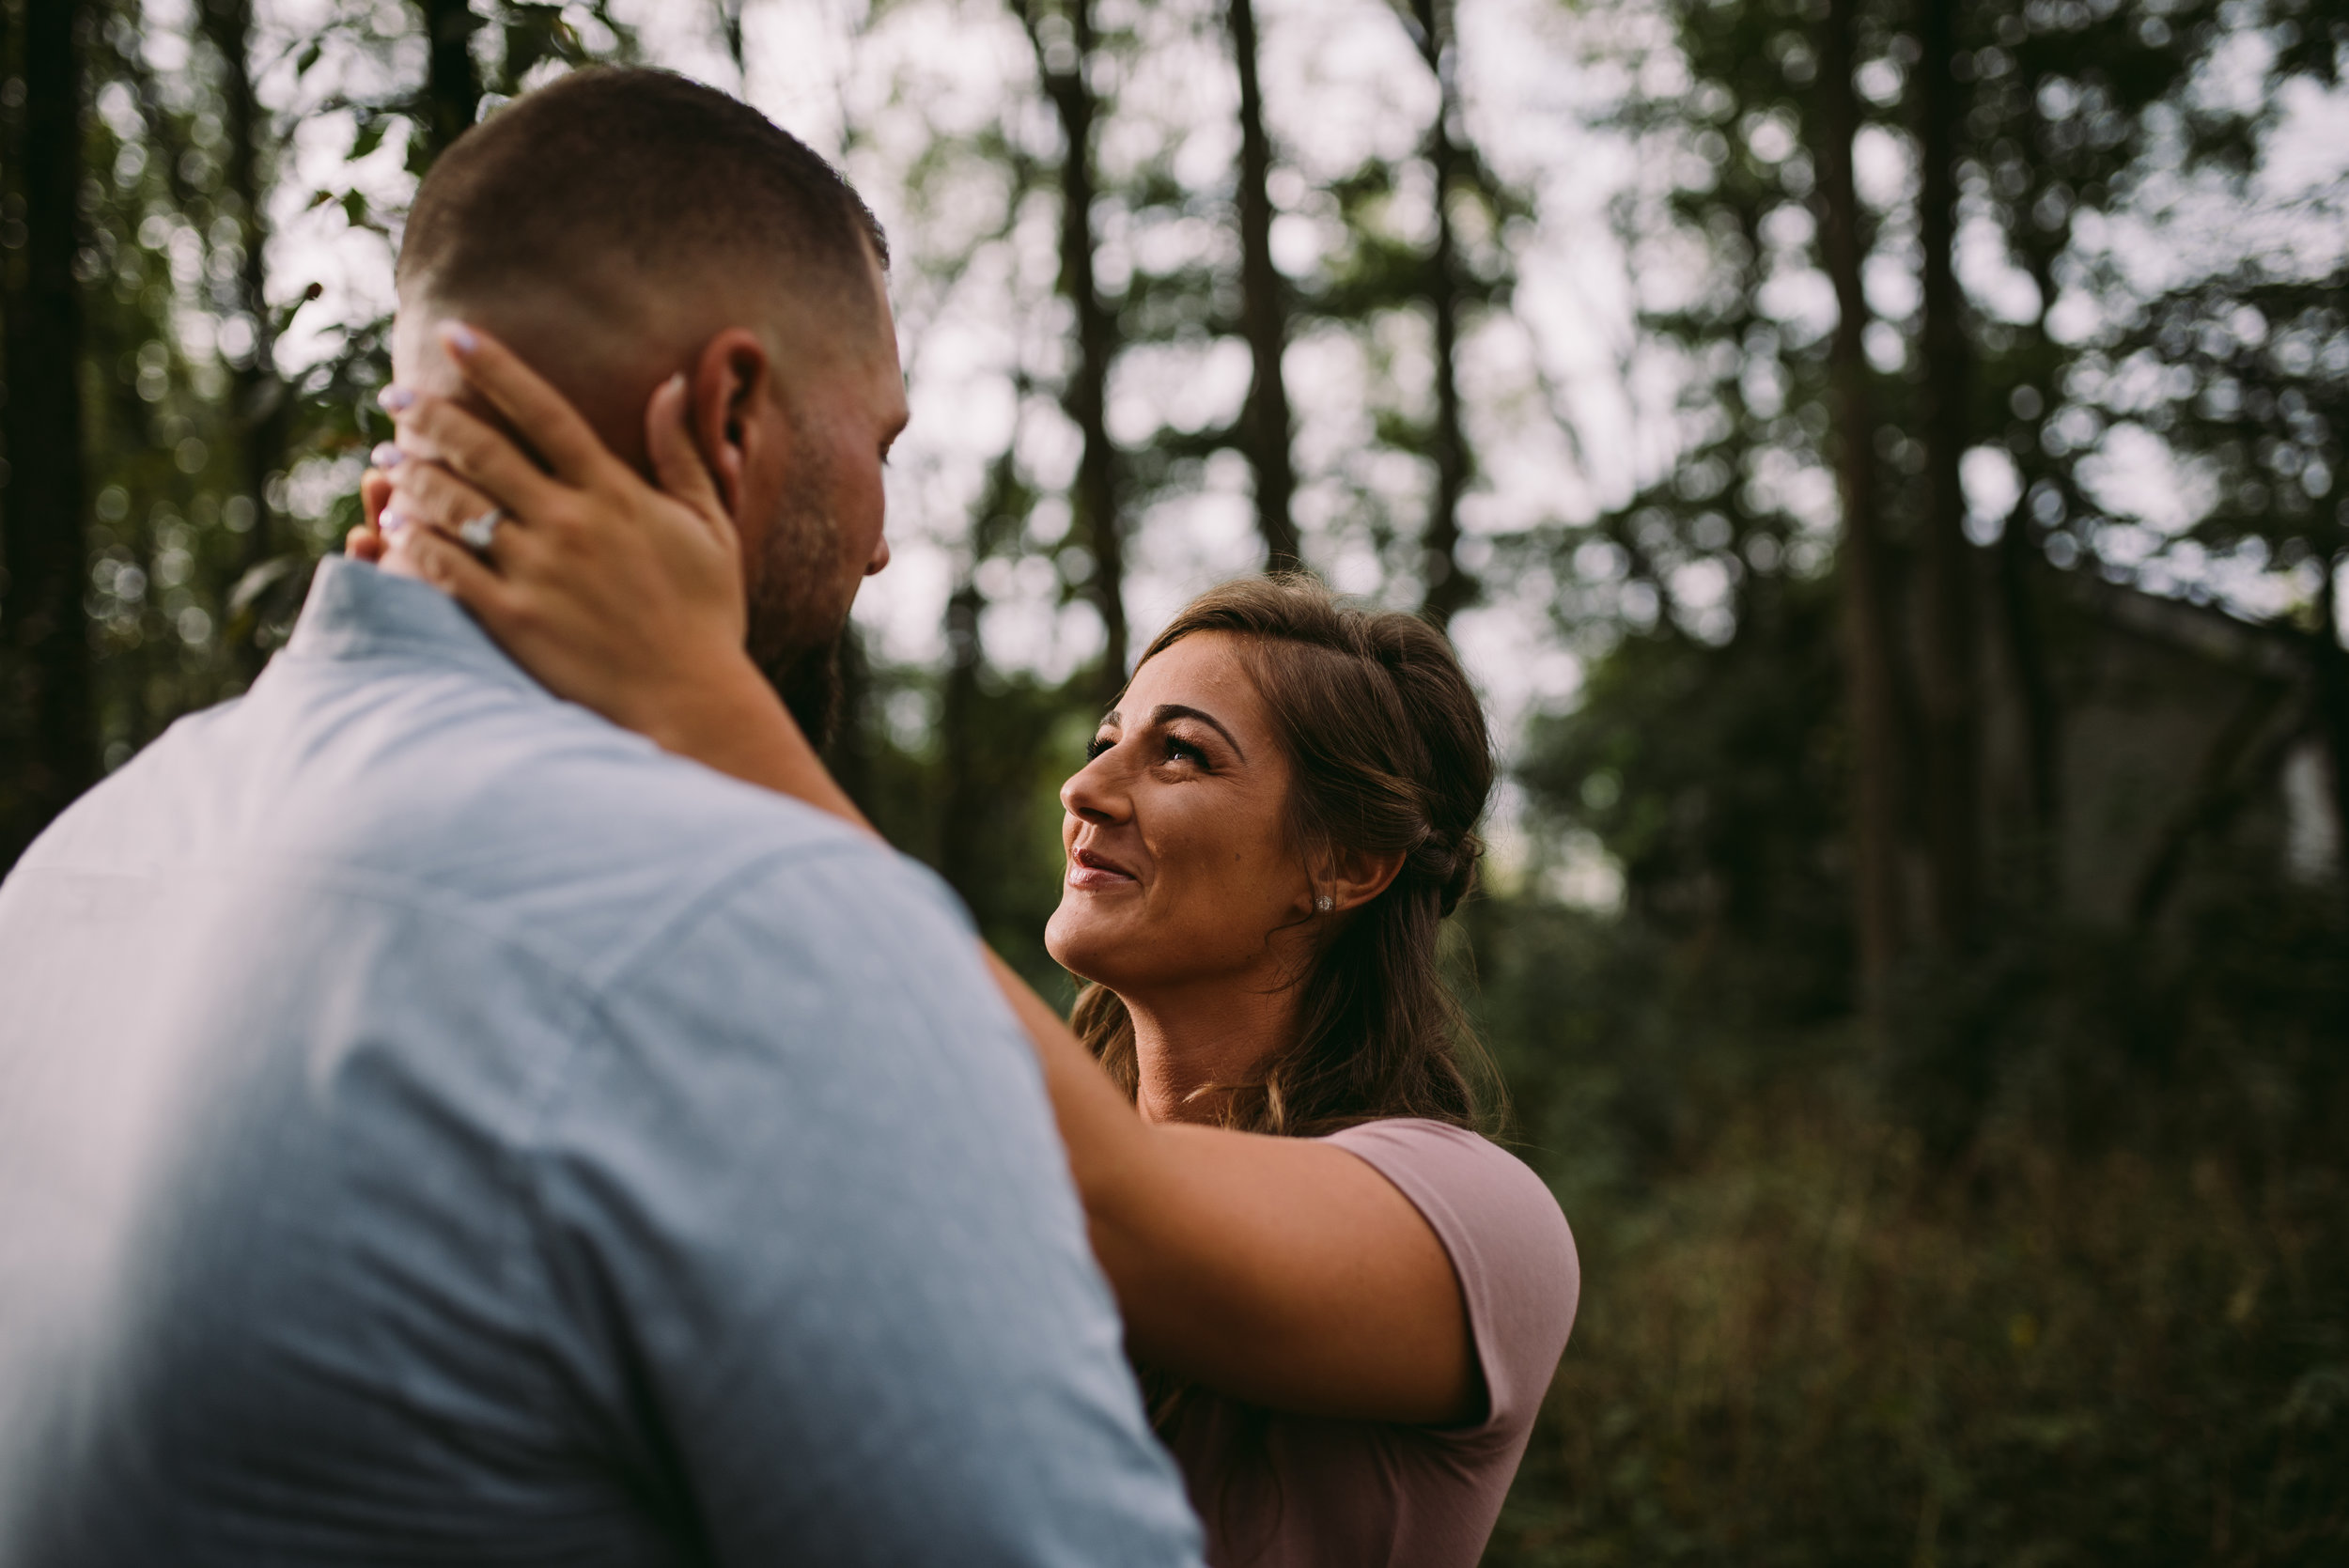 Brooke&Blake_EngagementSession_October2018_SamanthaRosePhotography_025.JPG